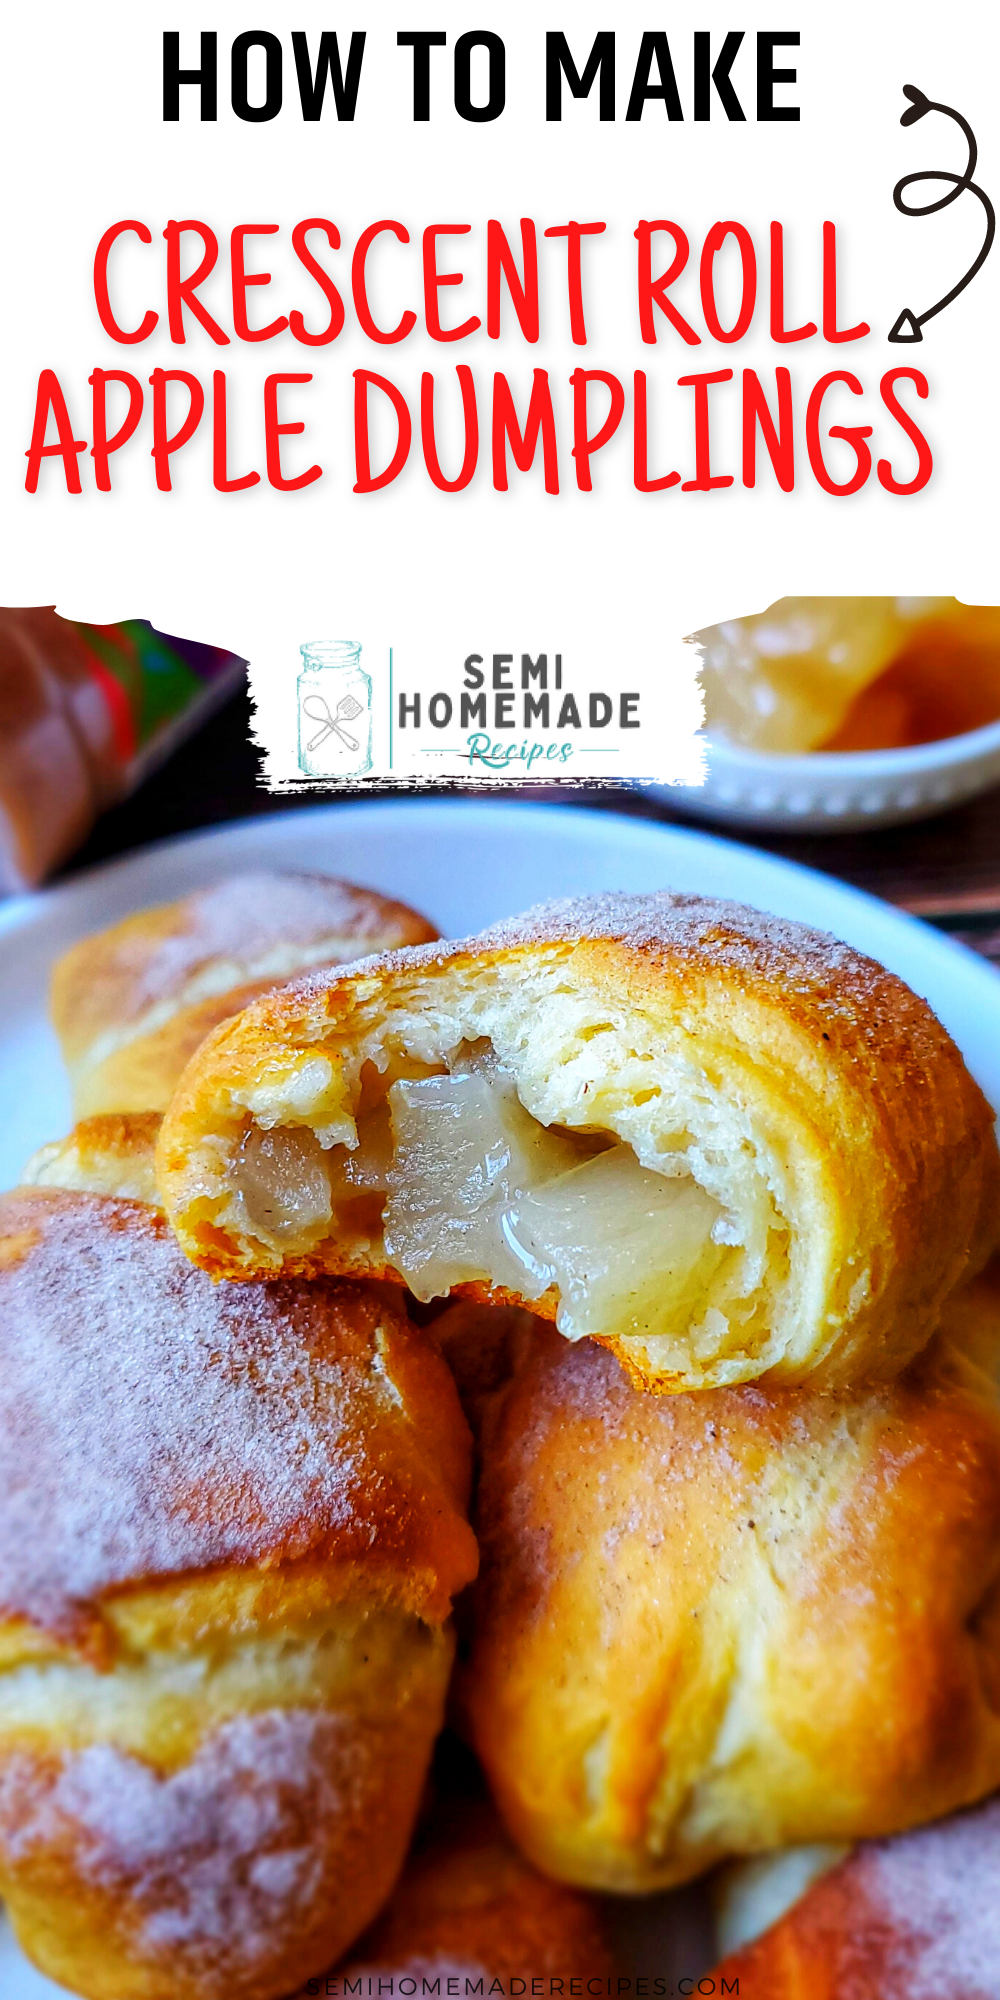 Crescent rolls, apple pie filling and cinnamon sugar comes together to make the sweetest little Crescent Roll Apple Dumplings for dessert!